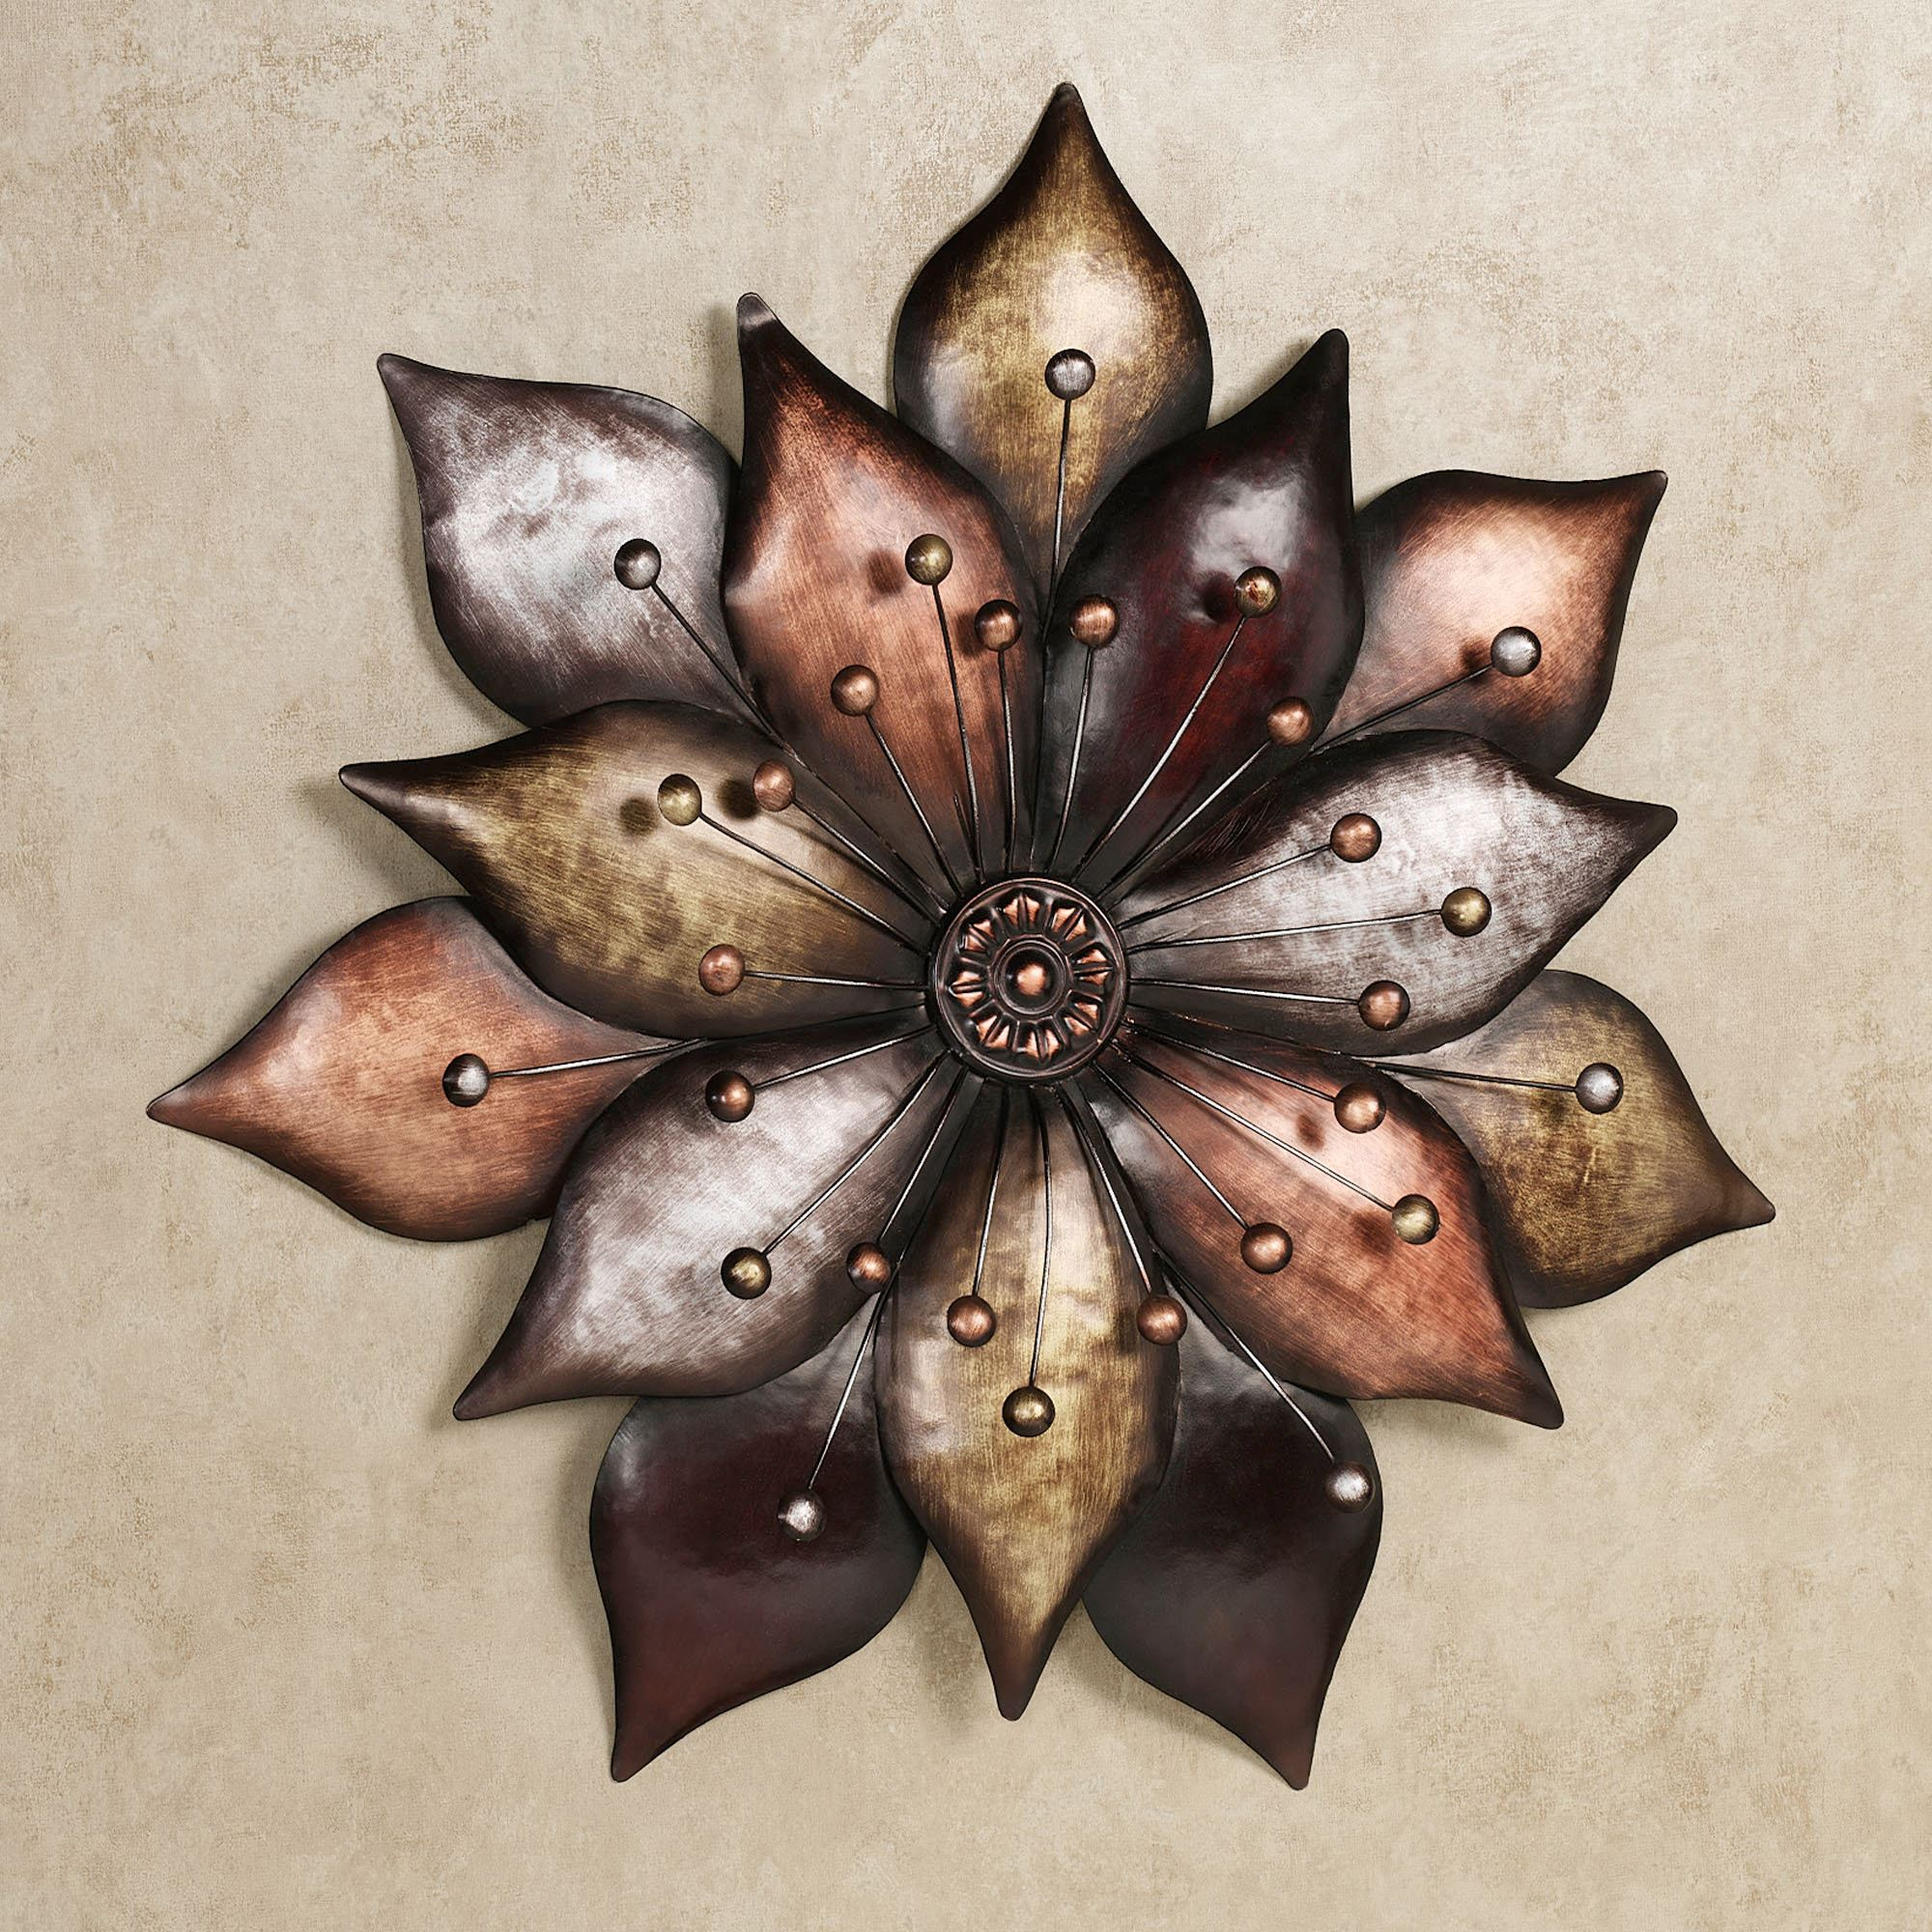 nice Metallic Wall Decor Part - 14: You Might Also Consider. Arris Floral Mirrored Wall Art Multi Metallic